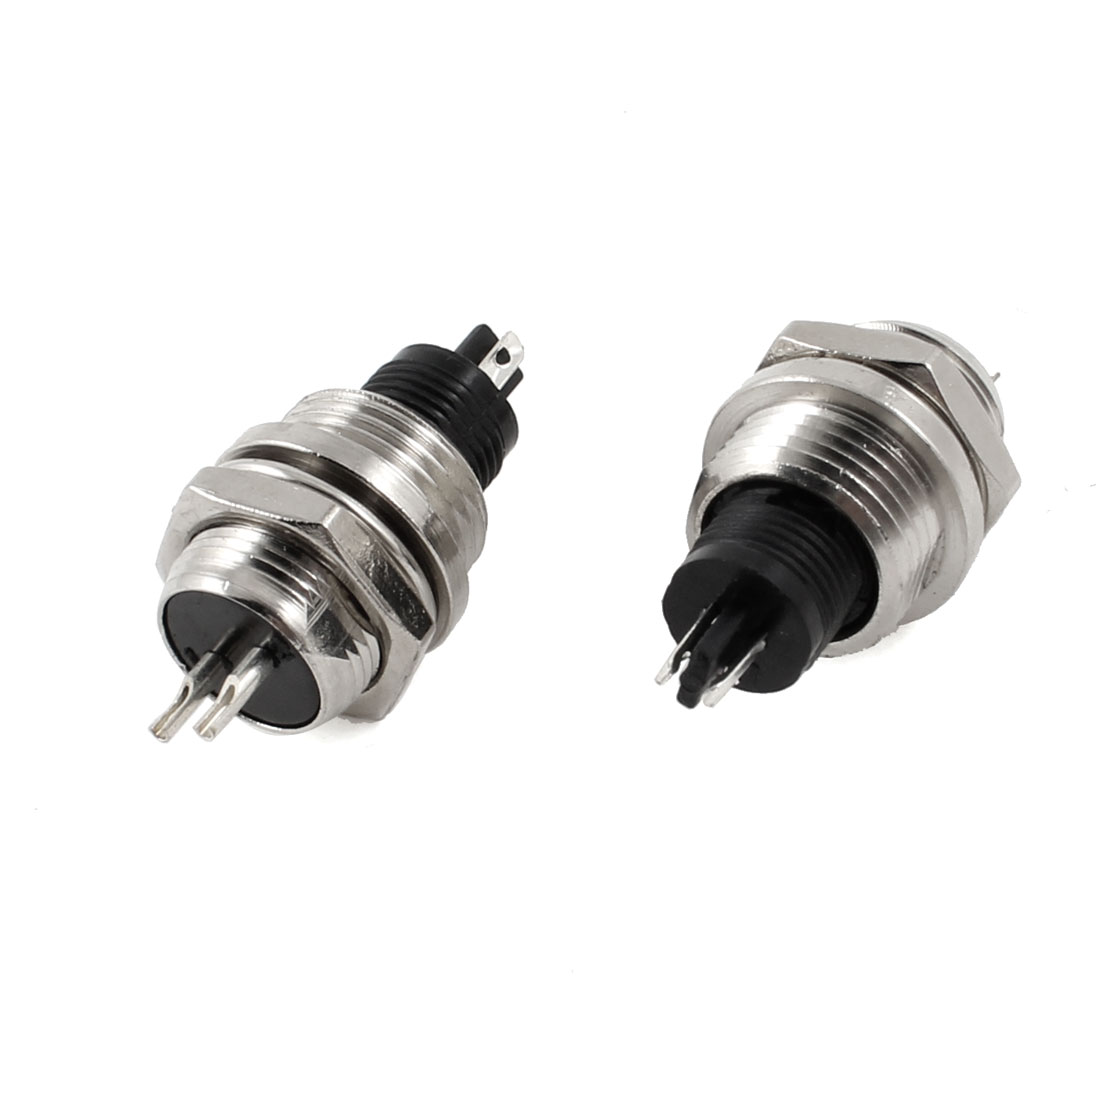 2 Pcs Panel Mount Universal Aviation Connector Socket 12mm